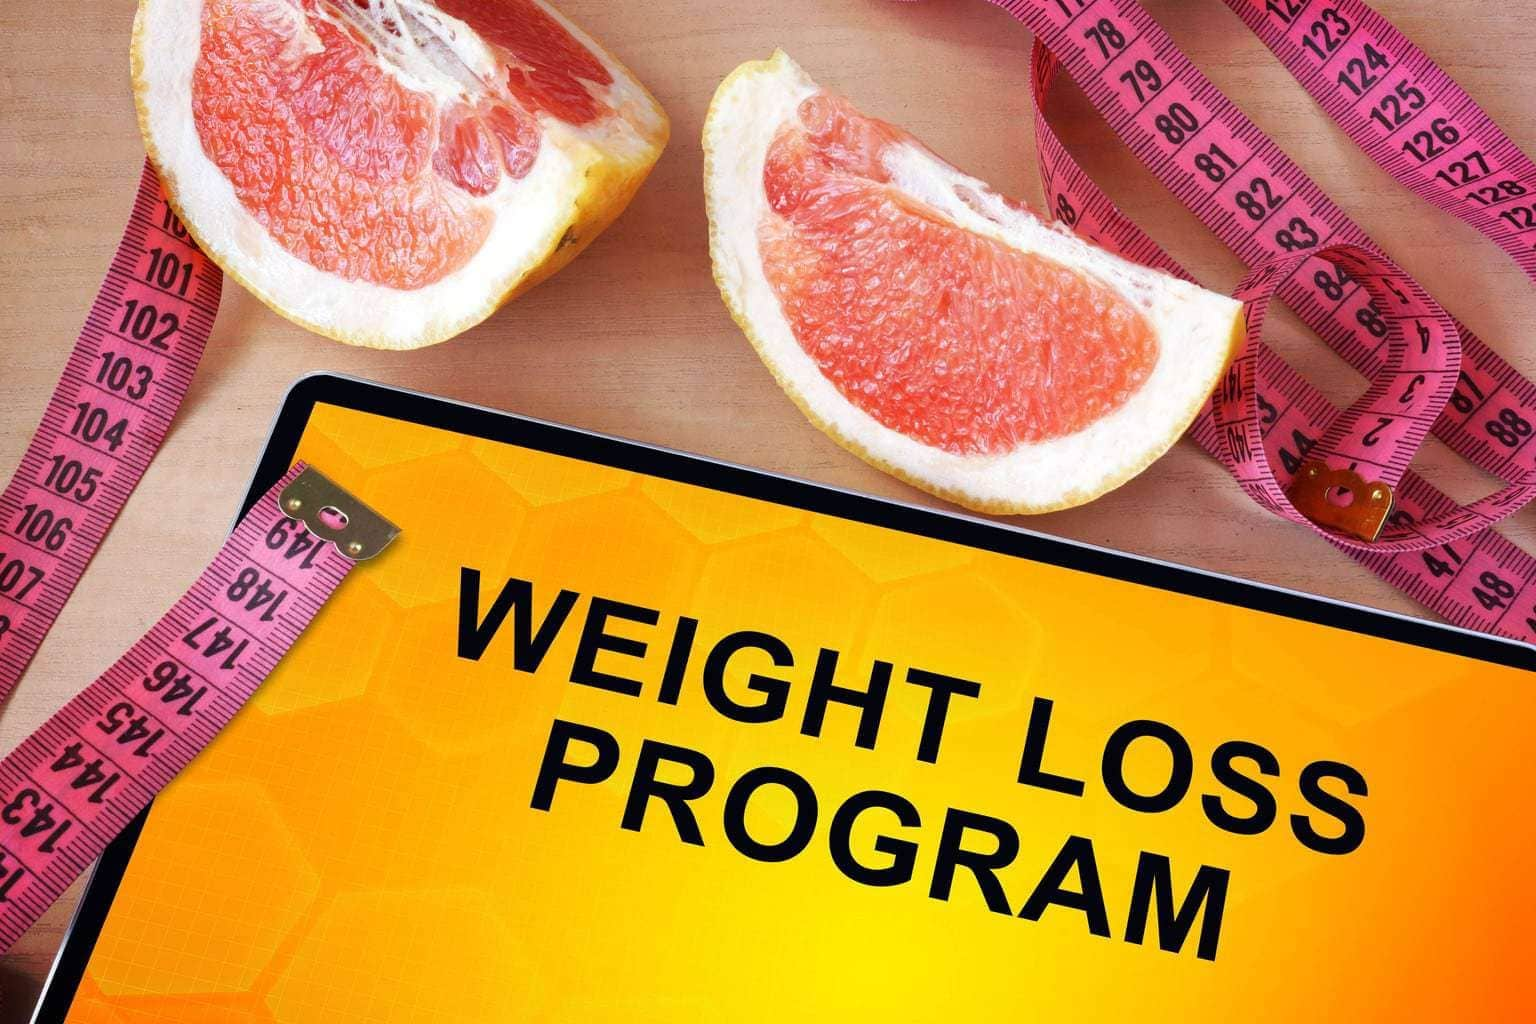 Fat loss programs that work that can